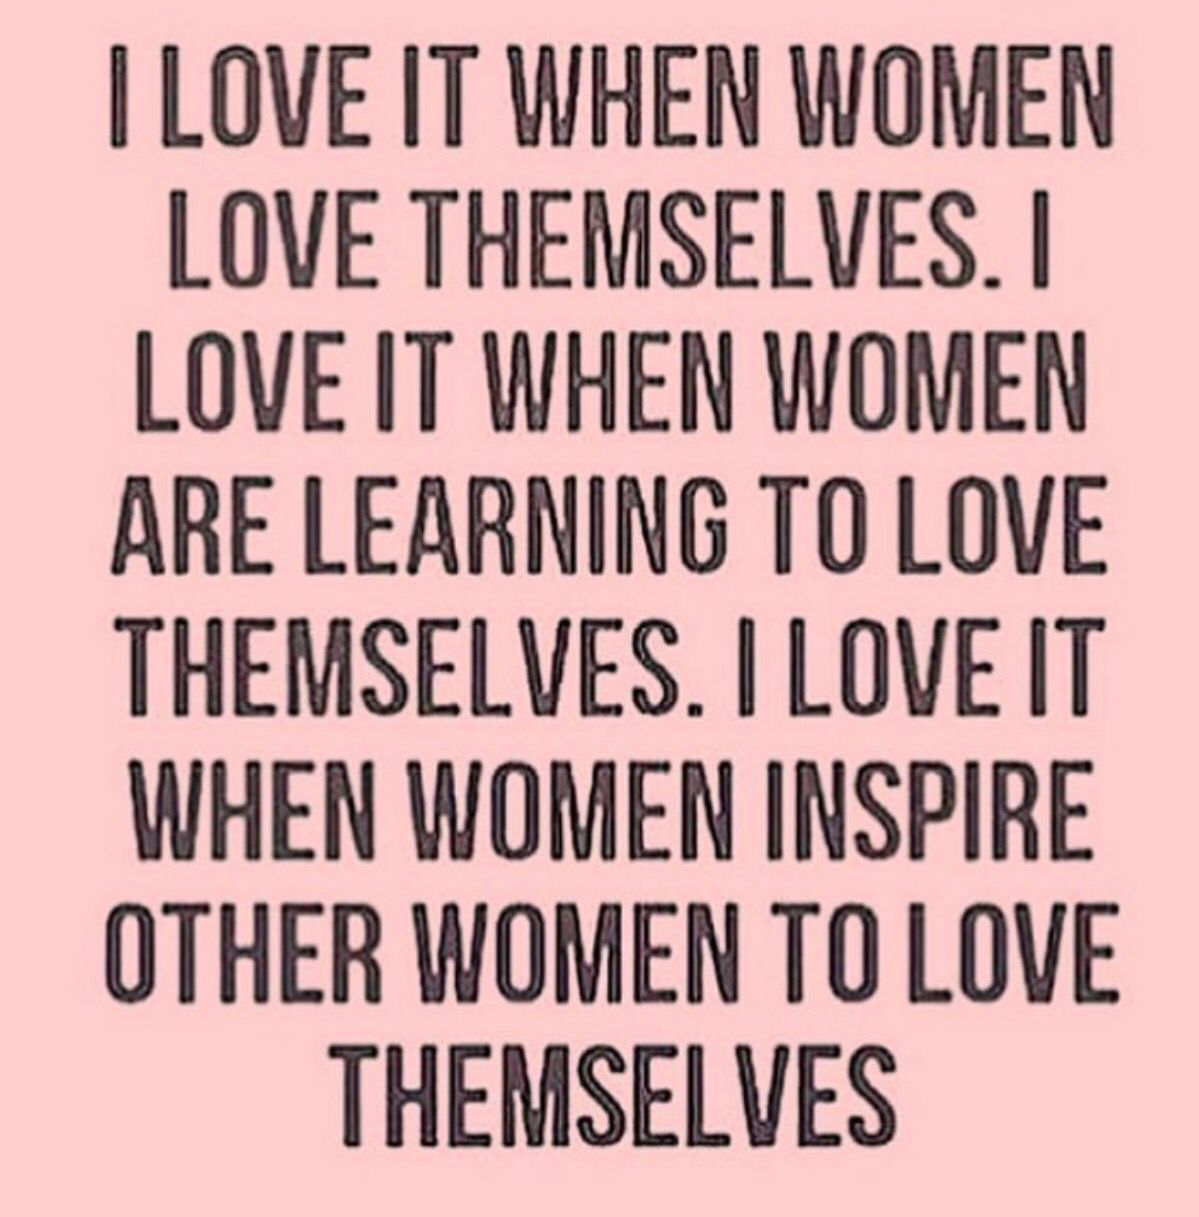 Happy Friday! #loveyourself #women #inspireeachother | Self love  affirmations, Love affirmations, Positivity